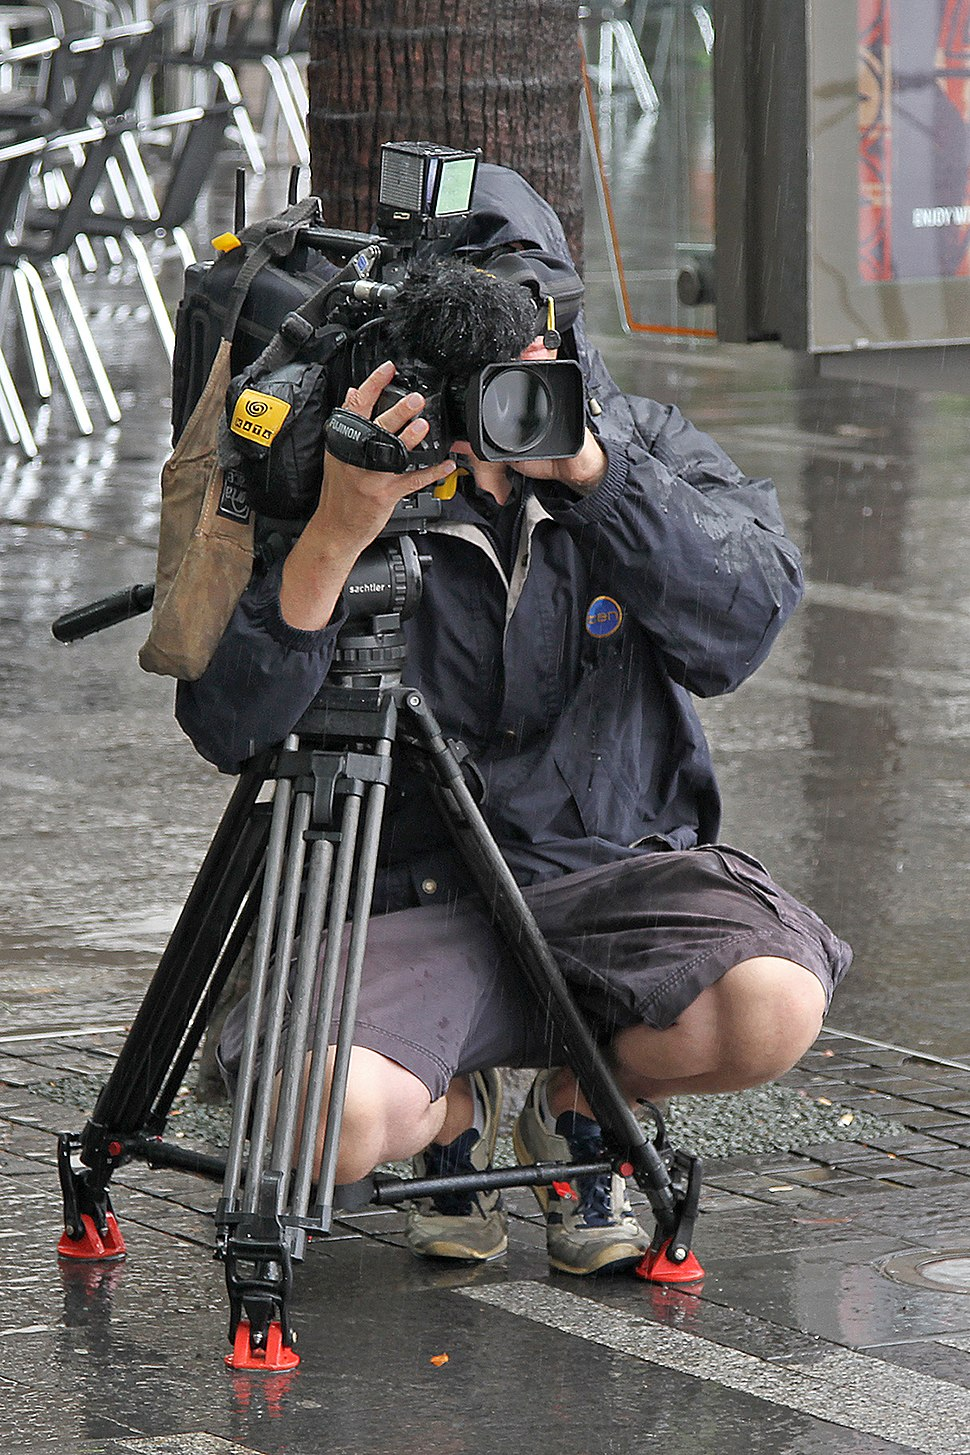 Ch10 Cameraman filming Vic Lorusso, Sydney, NSW, jjron, 01.12.2010